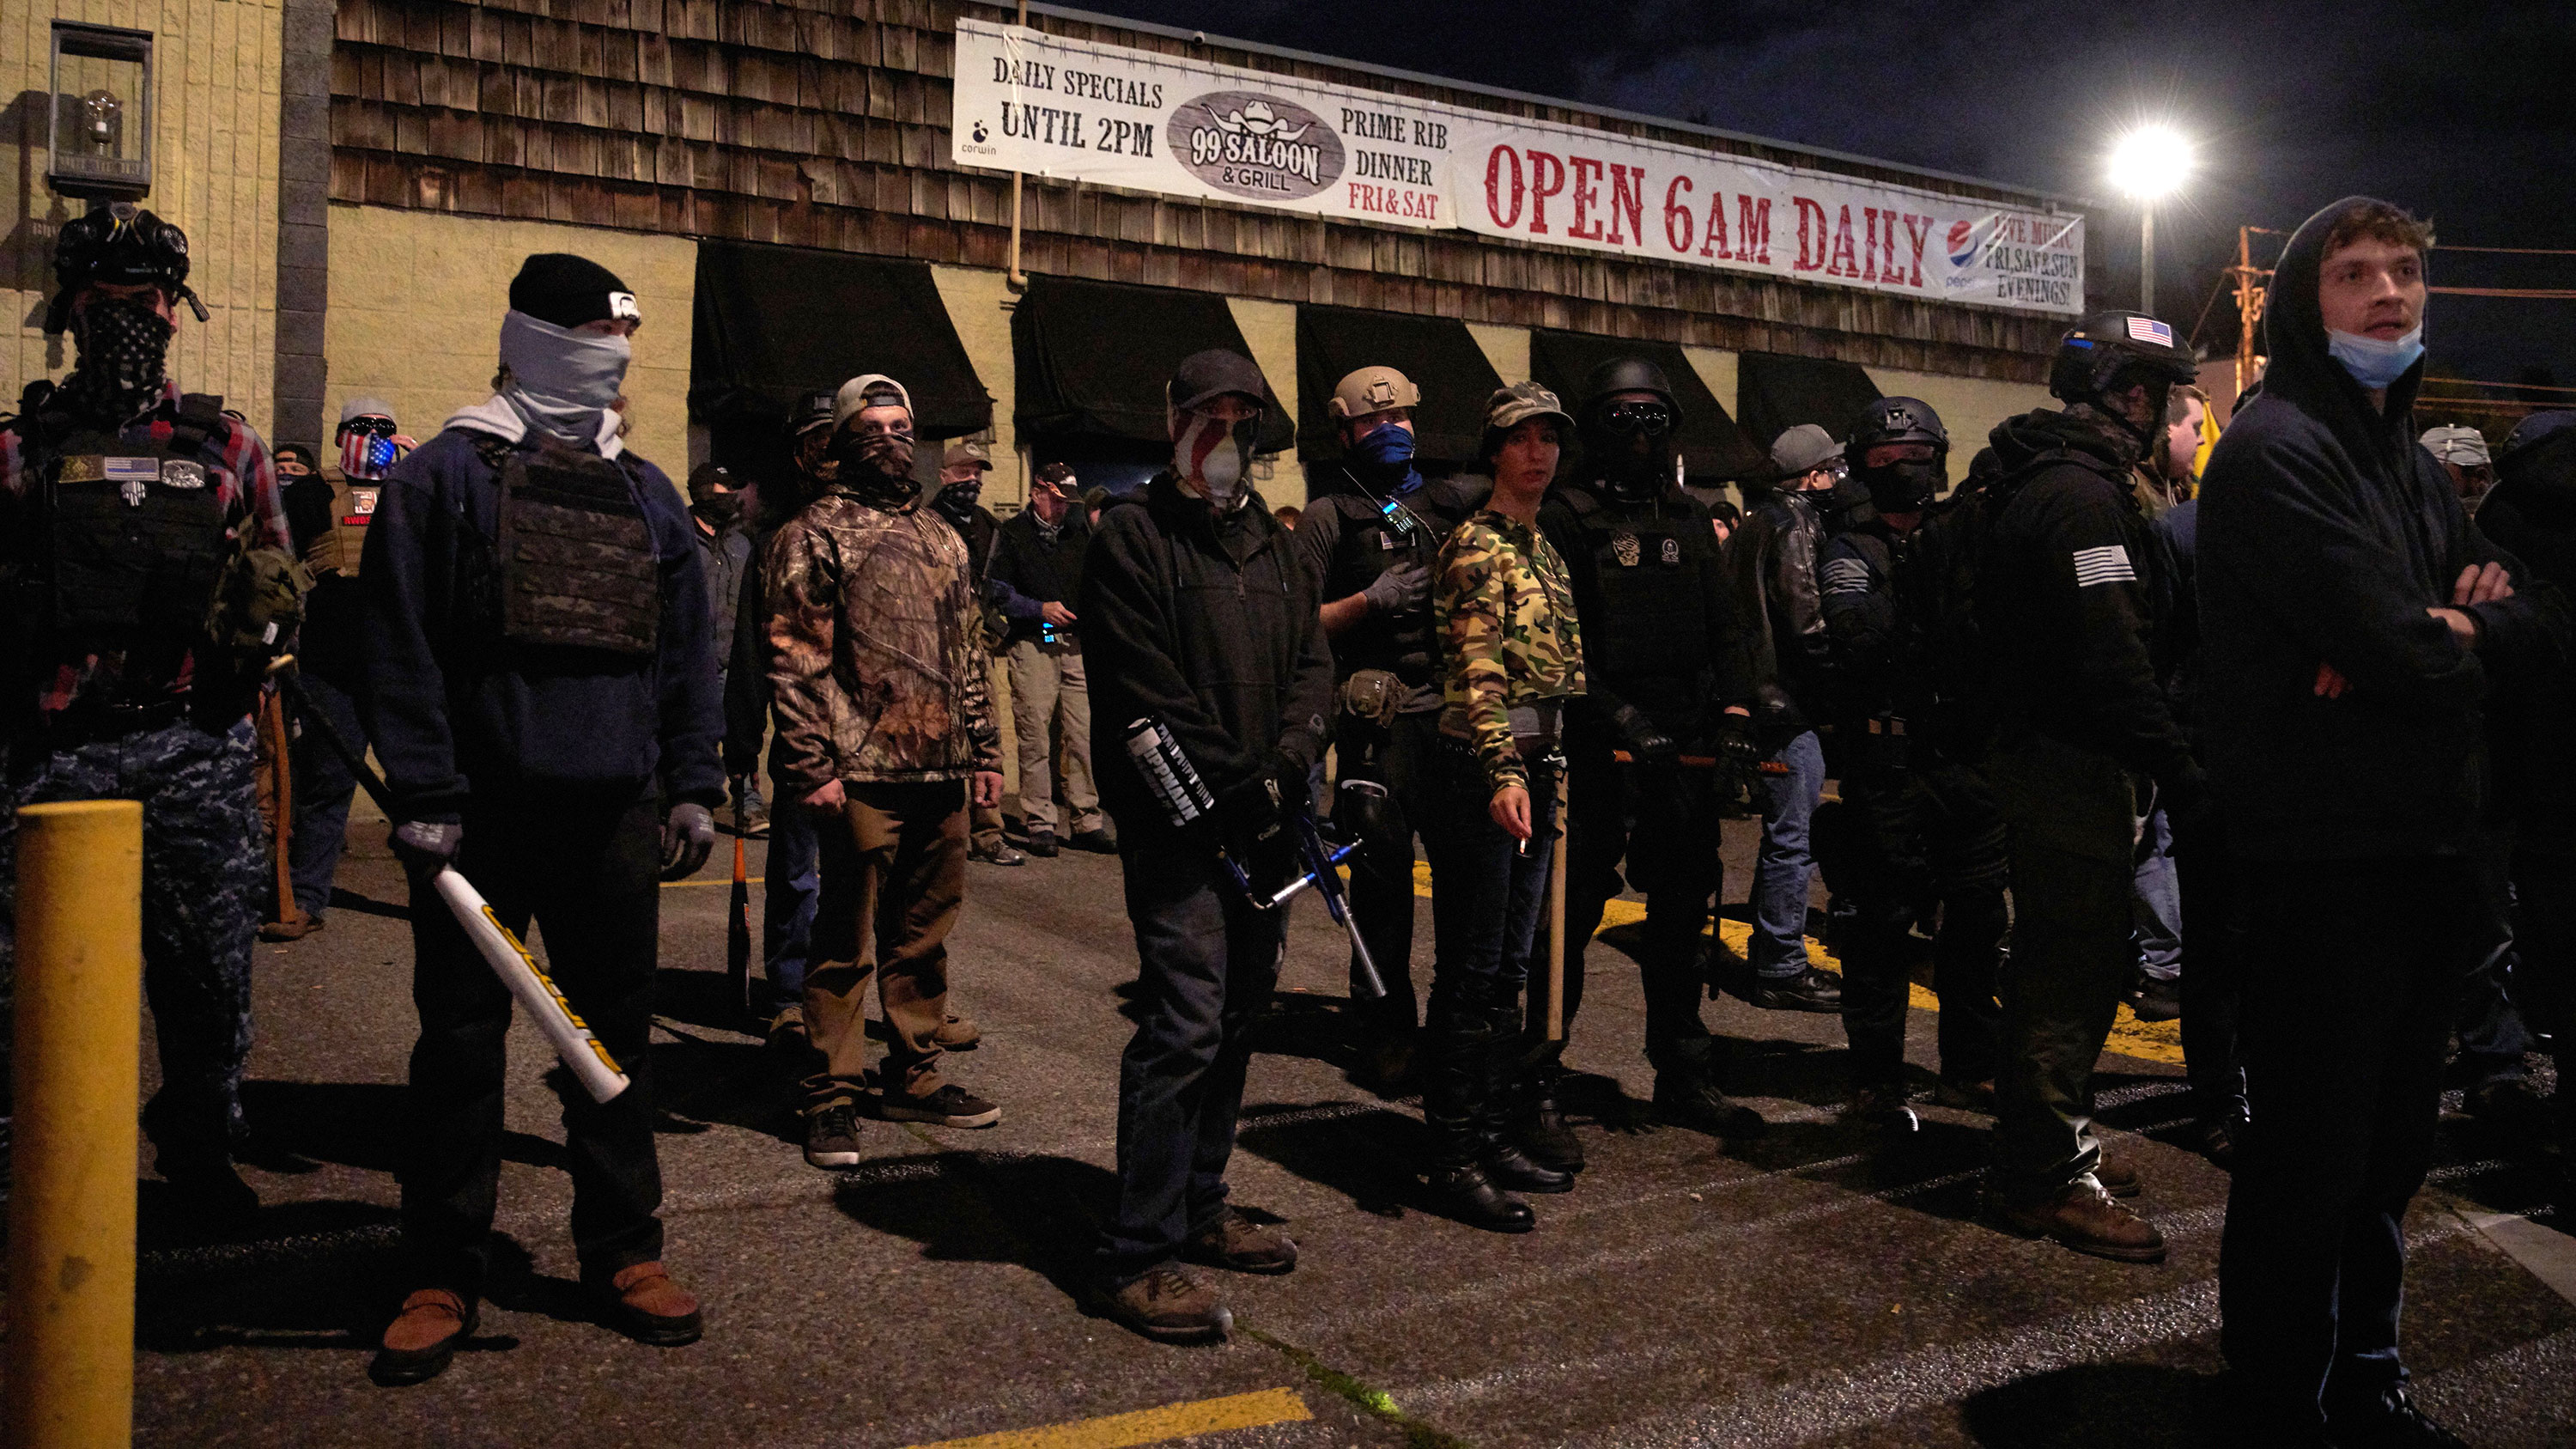 Seven arrested after vigil for Black man shot and killed by sheriffs in Washington state turns tense